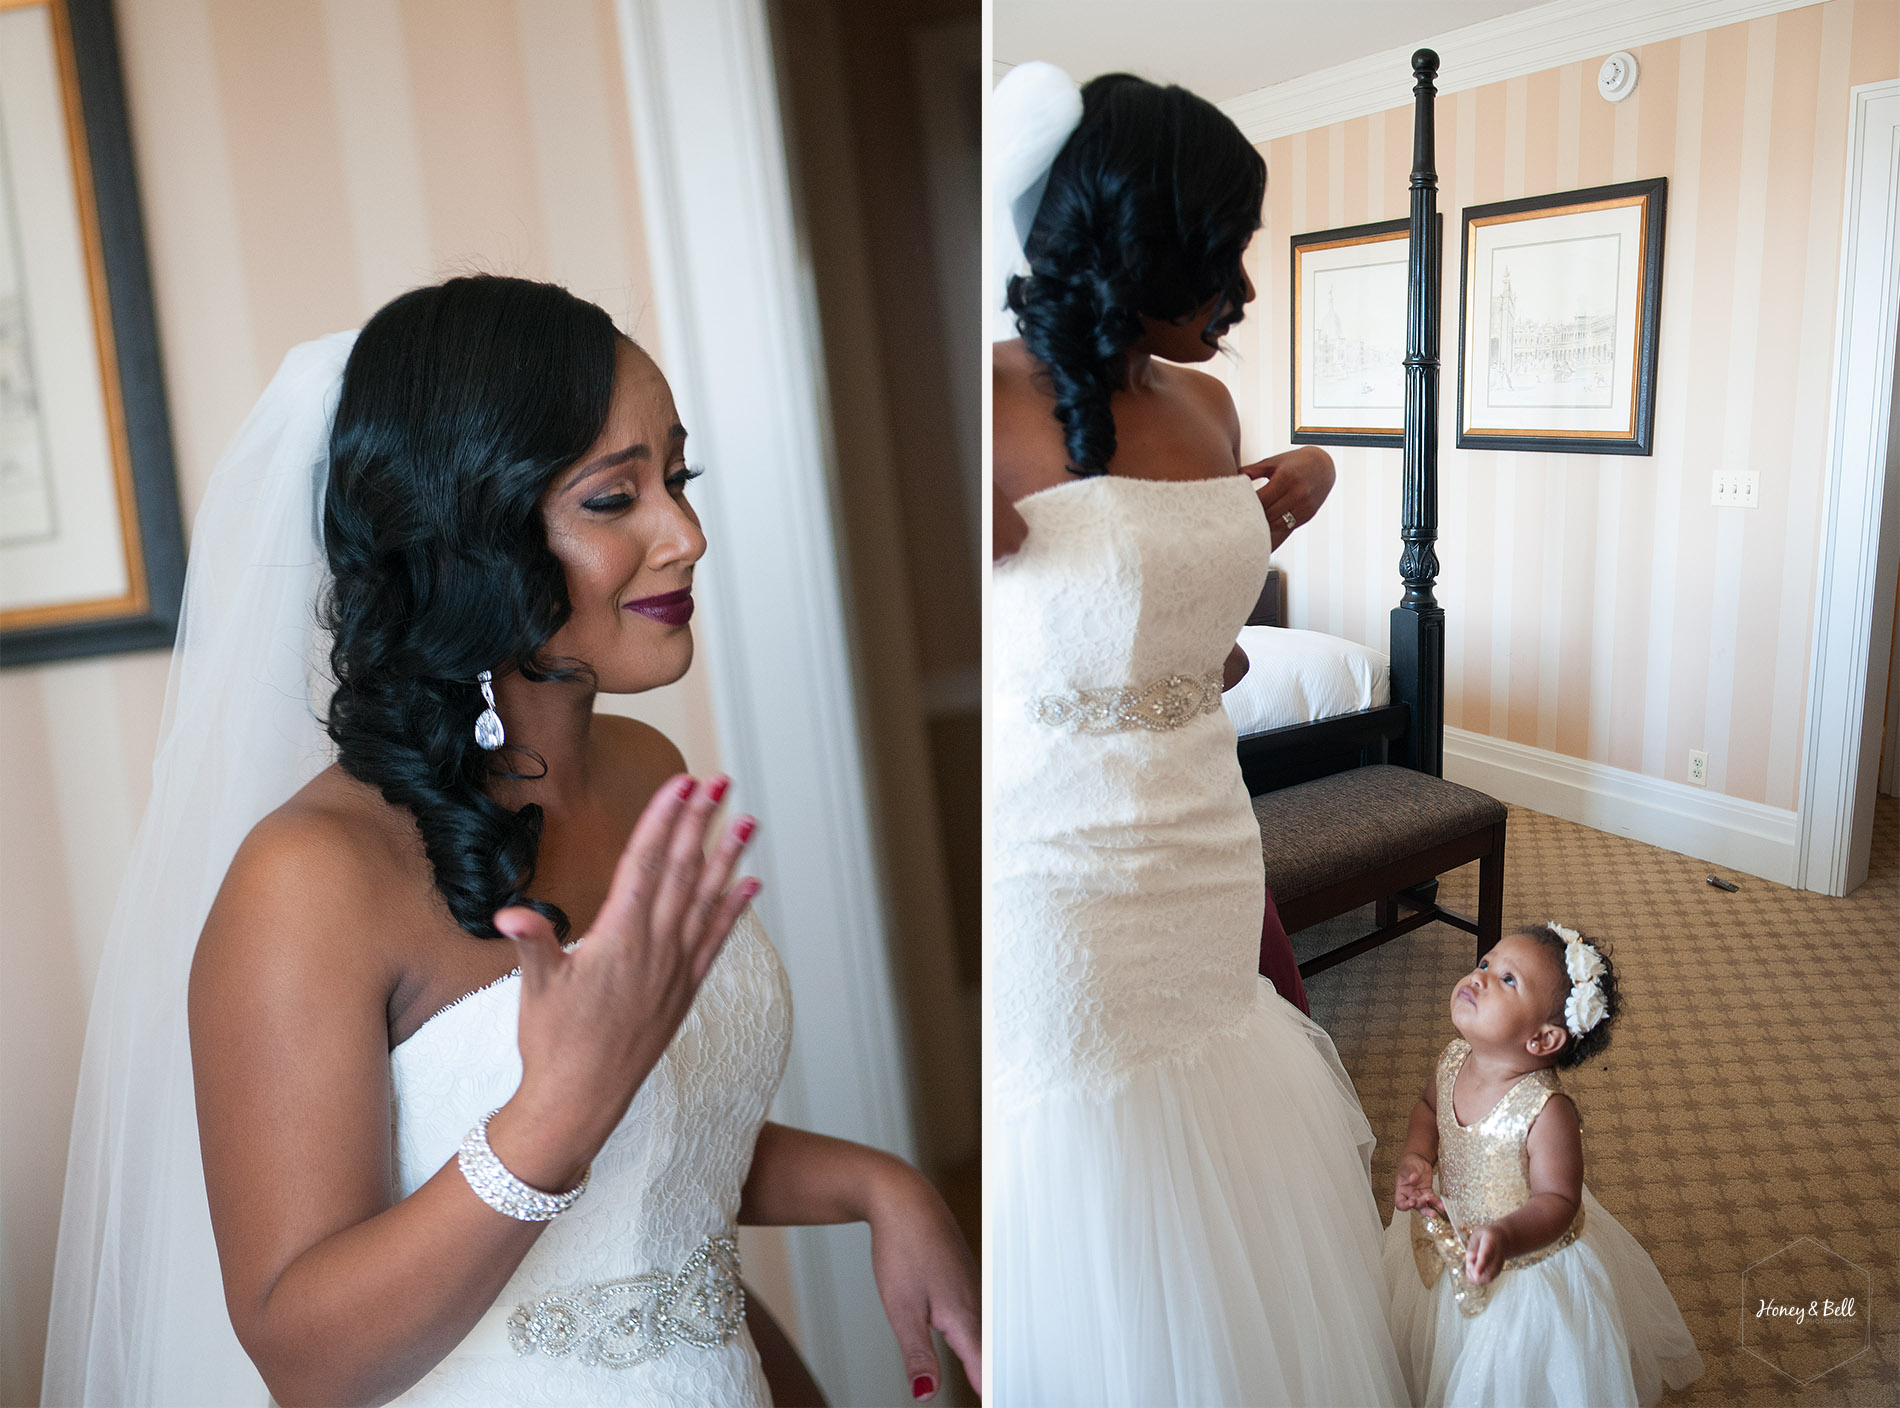 fields-wedding-rochester-michigan-detroit-wedding-photographer-royal-park-hotel-bride-getting-ready-10